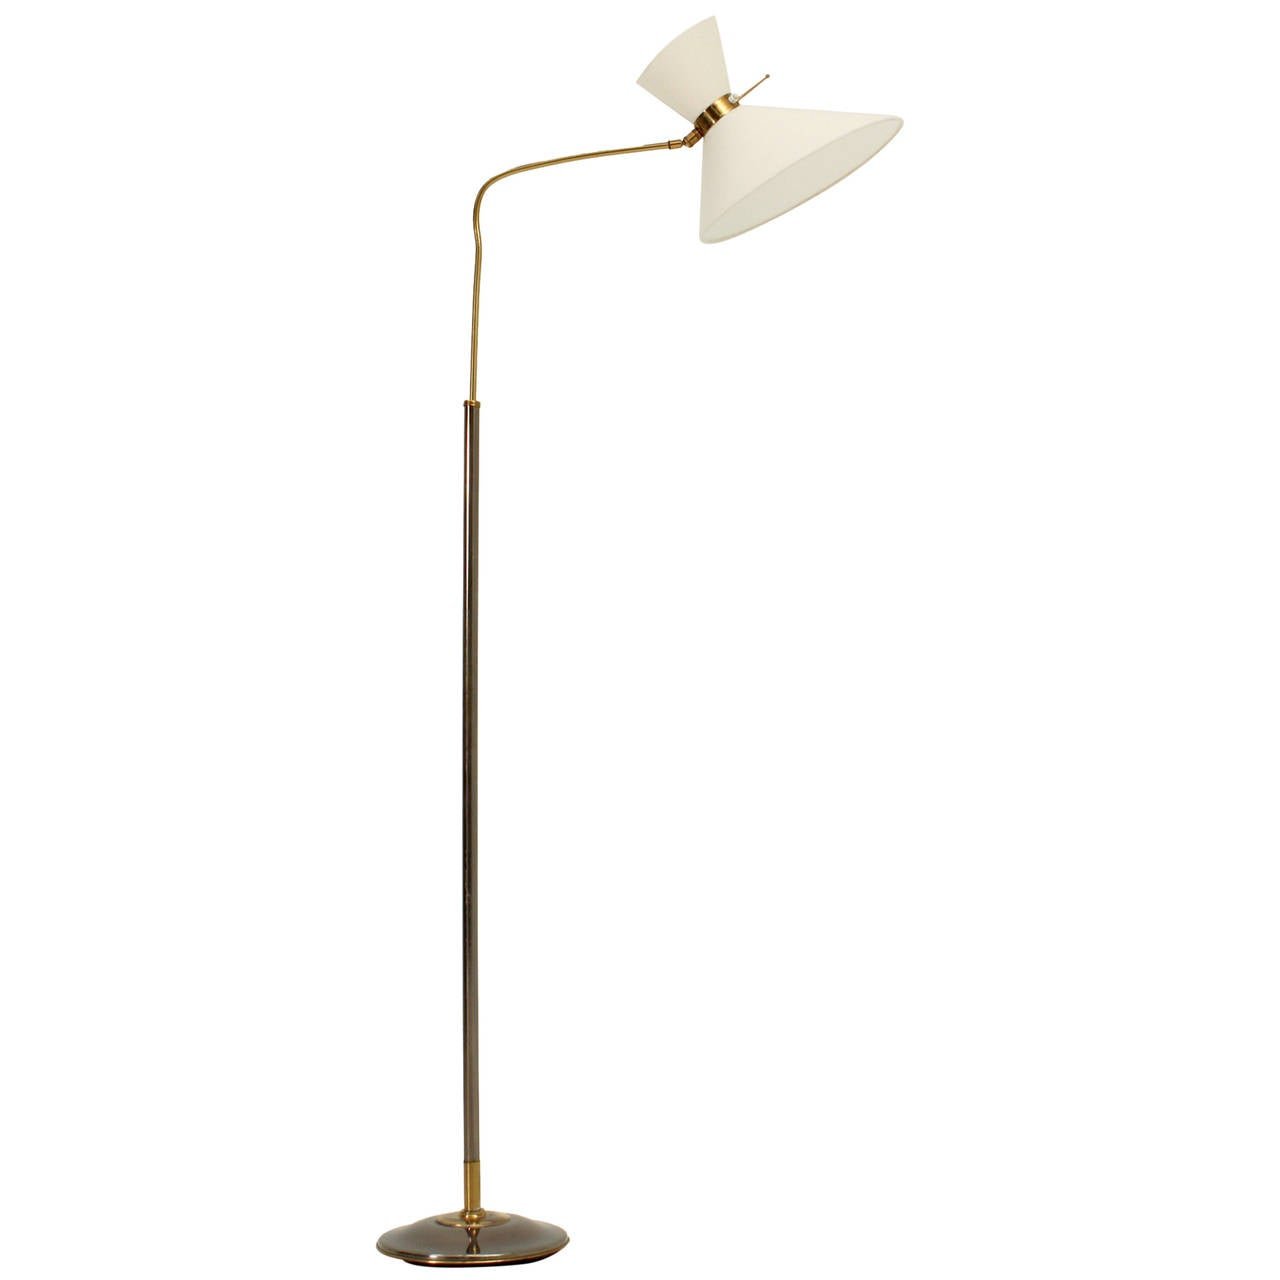 Floor lamp by lunel 1950s at 1stdibs for 1950s floor lamps